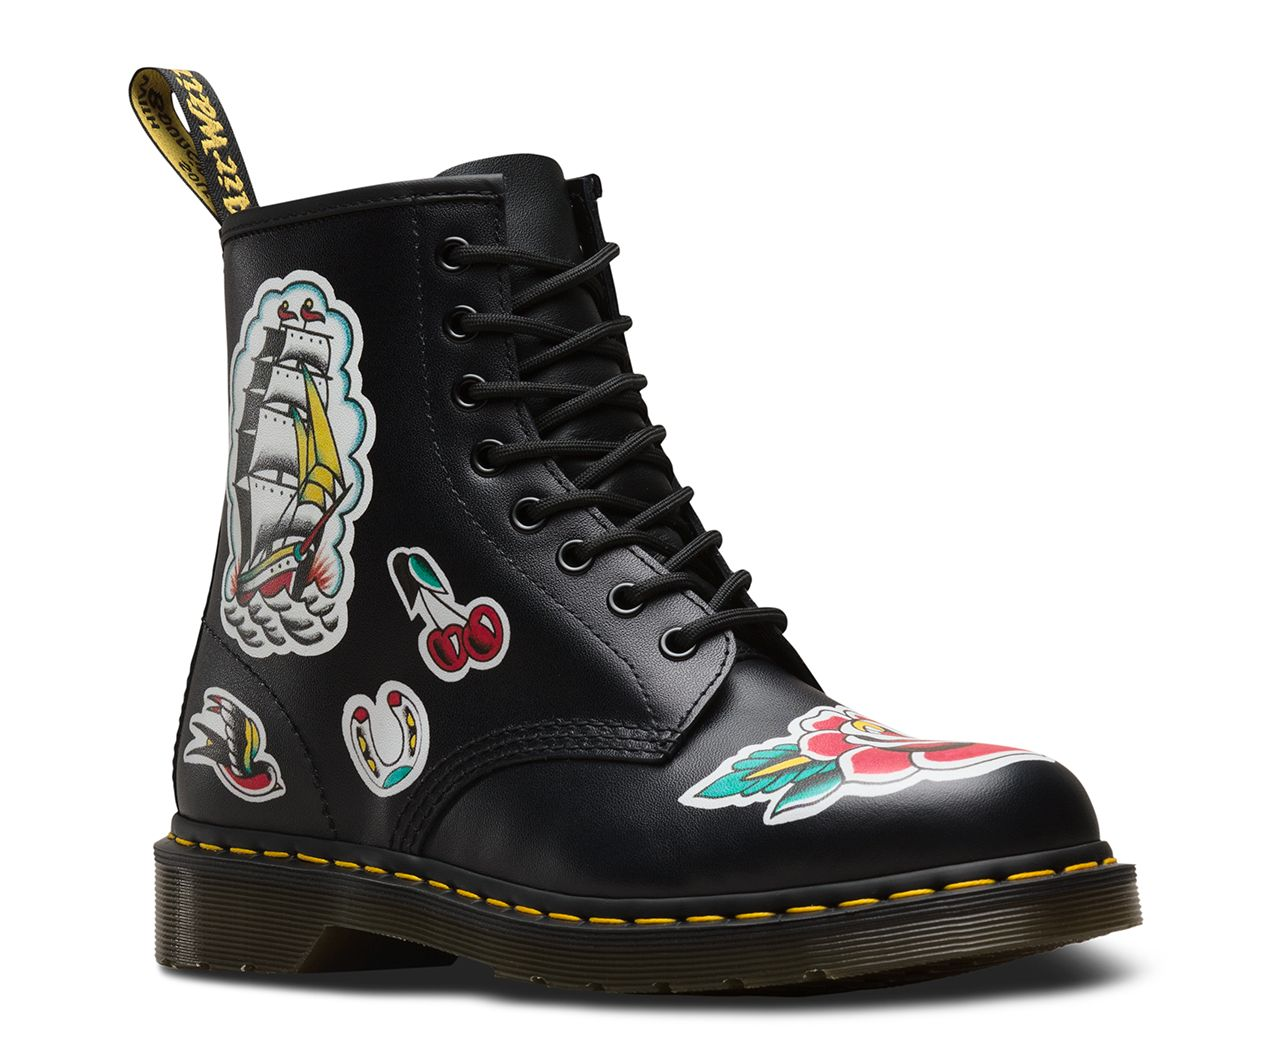 The 1460 Is The Original Dr Martens Boot The Boot S Instantly